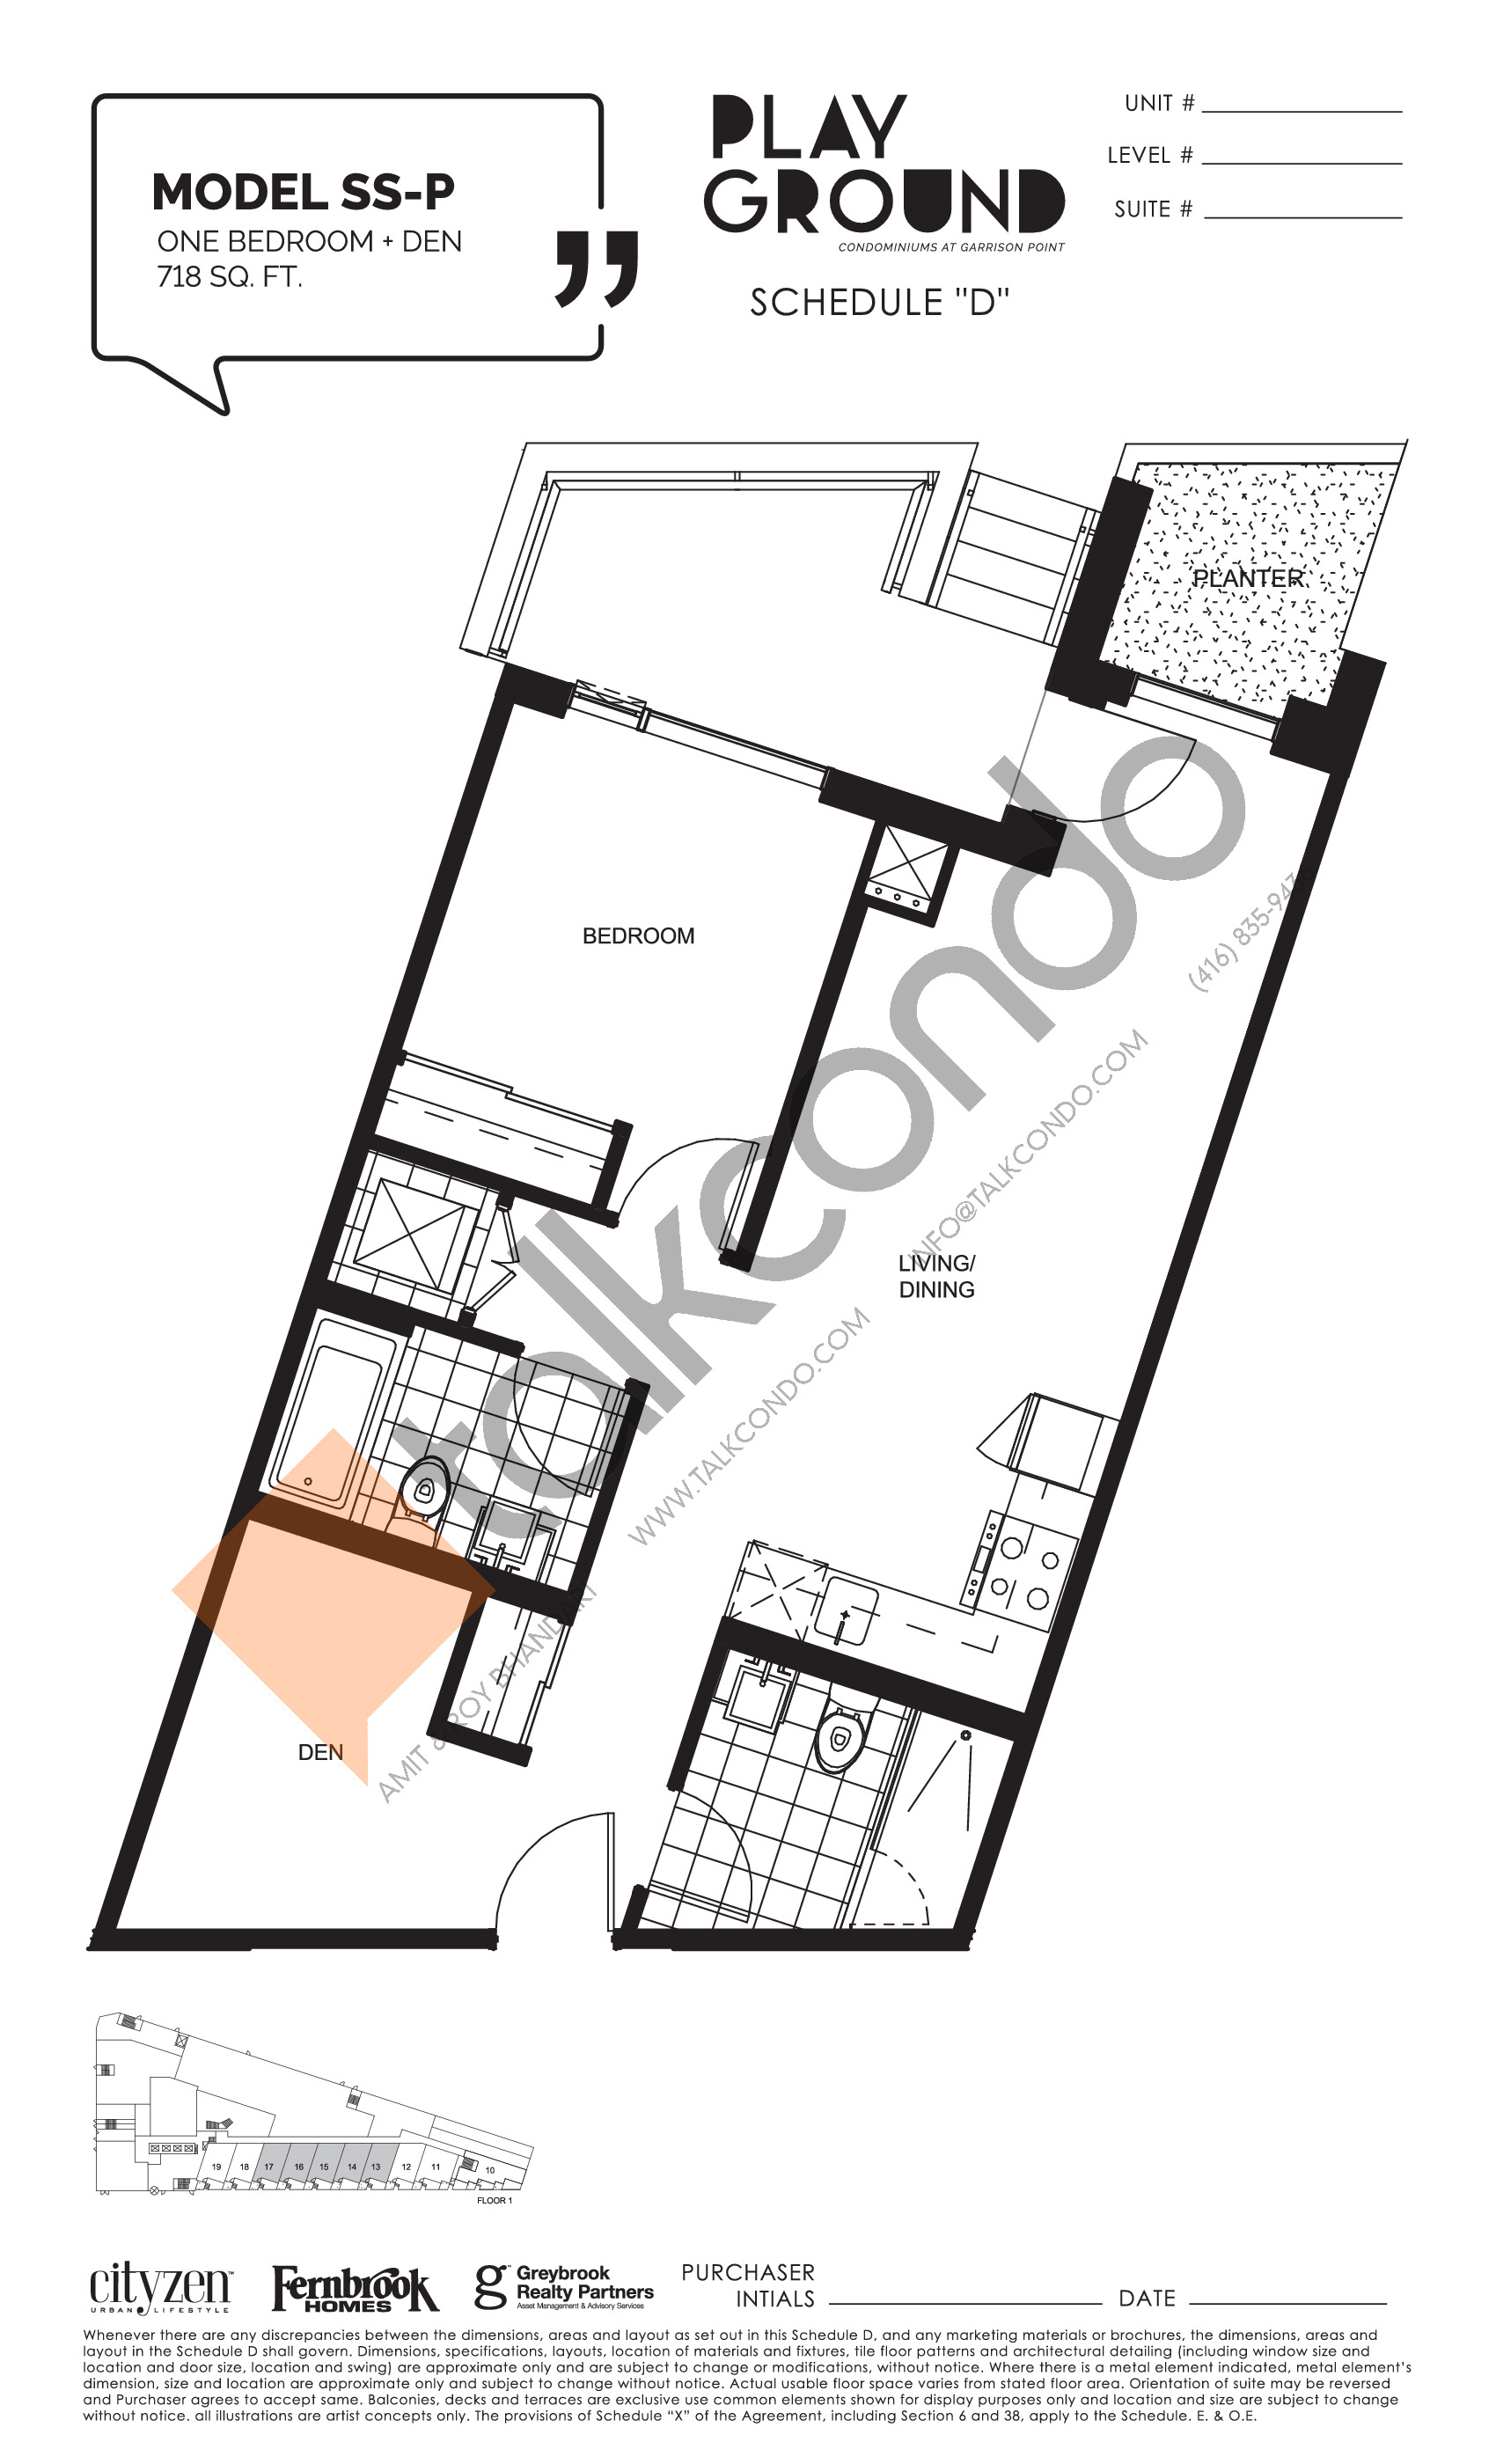 Model SS-P Floor Plan at Playground Condos at Garrison Point - 718 sq.ft